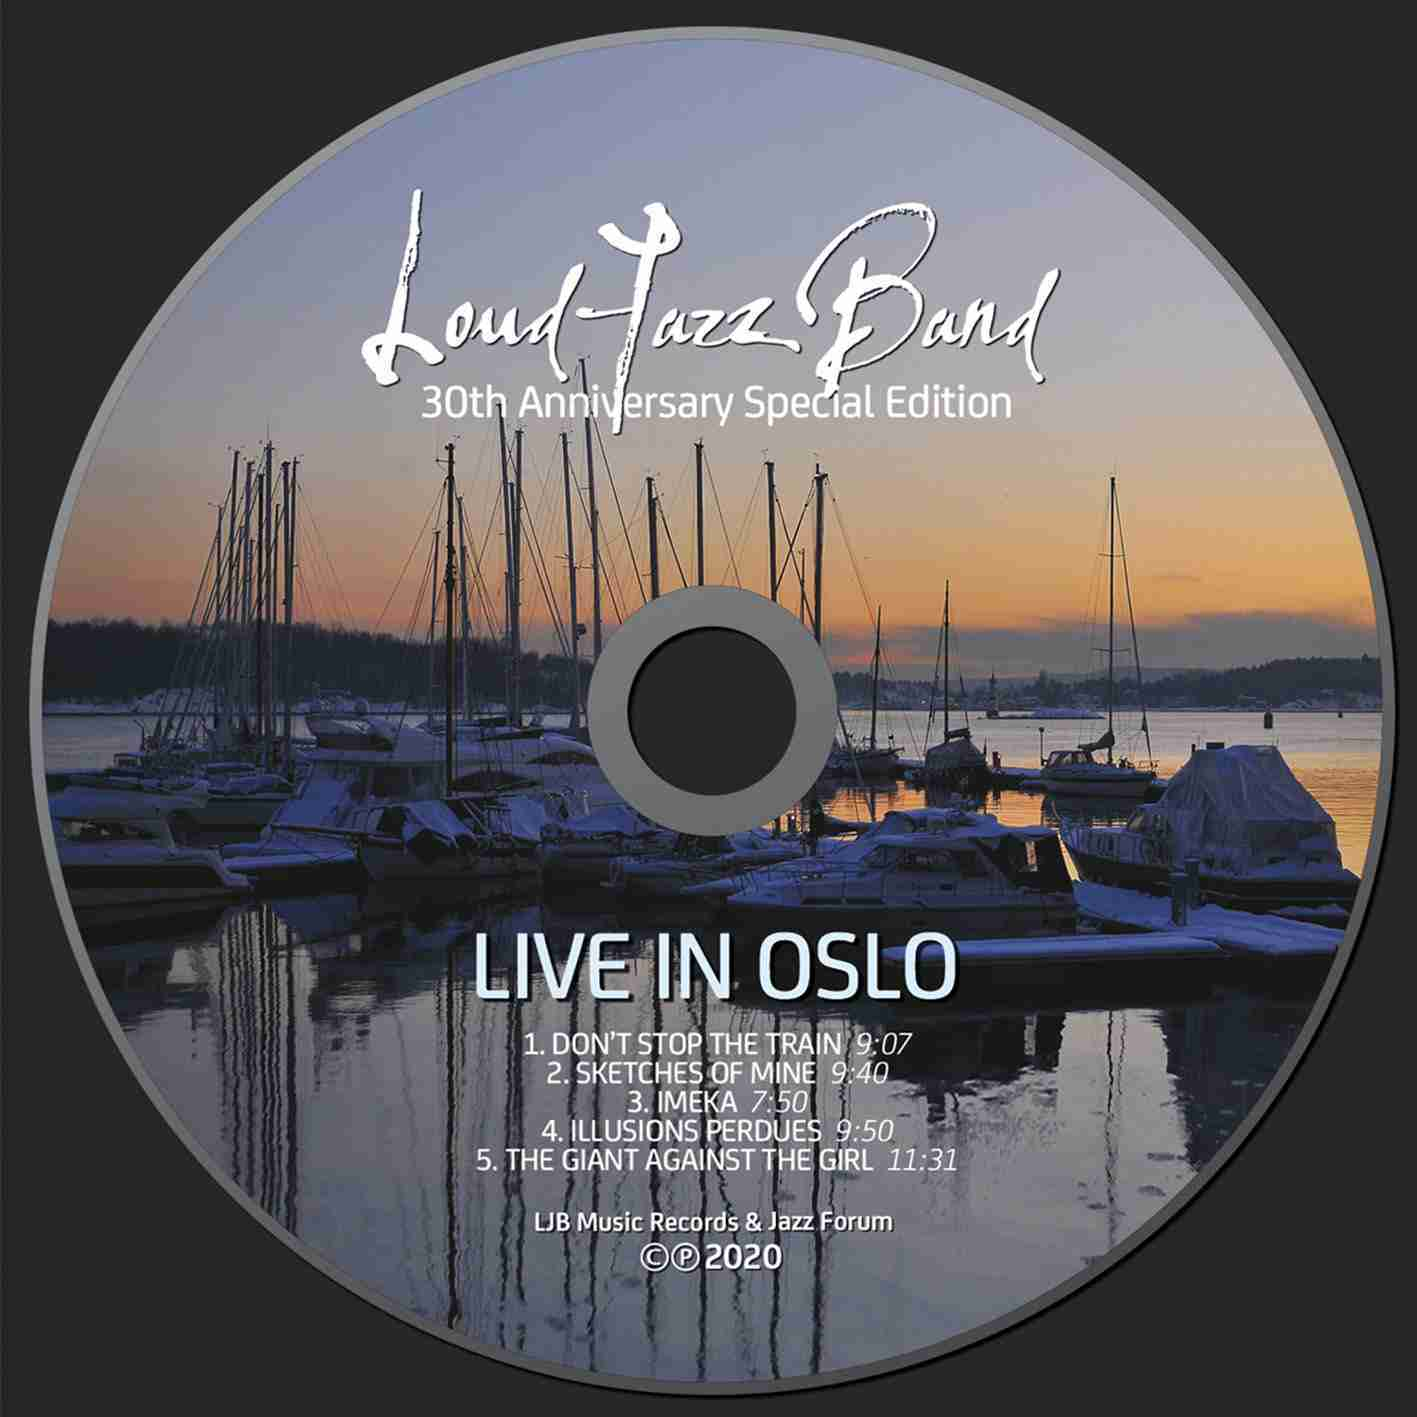 Live in Oslo - disc project